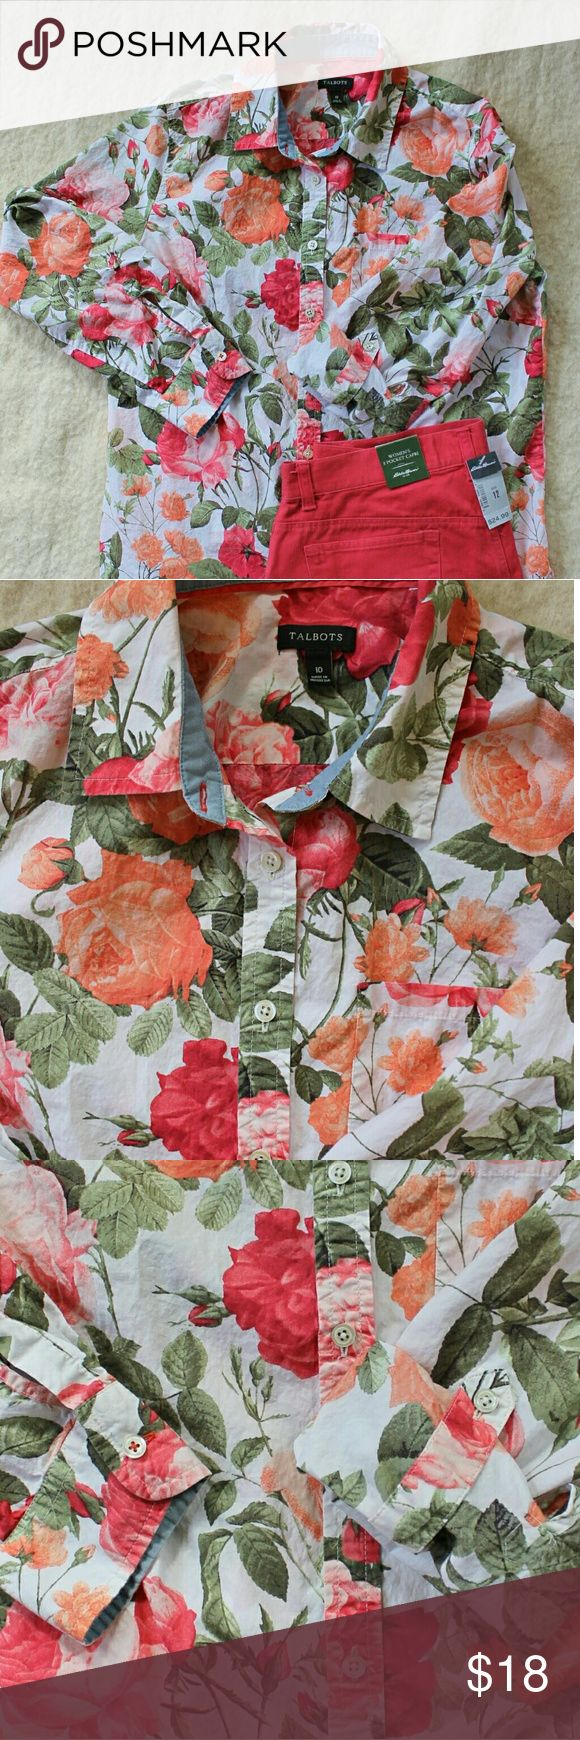 Talbots Sping Roses Blouse Button up blouse with large rose pattern in coral and pink. Has long sleeves with button cuffs. Also has button tab which allows you to roll them up and fasten at elbow. Small pocket on left chest. 100% cotton. Talbots Tops Blouses